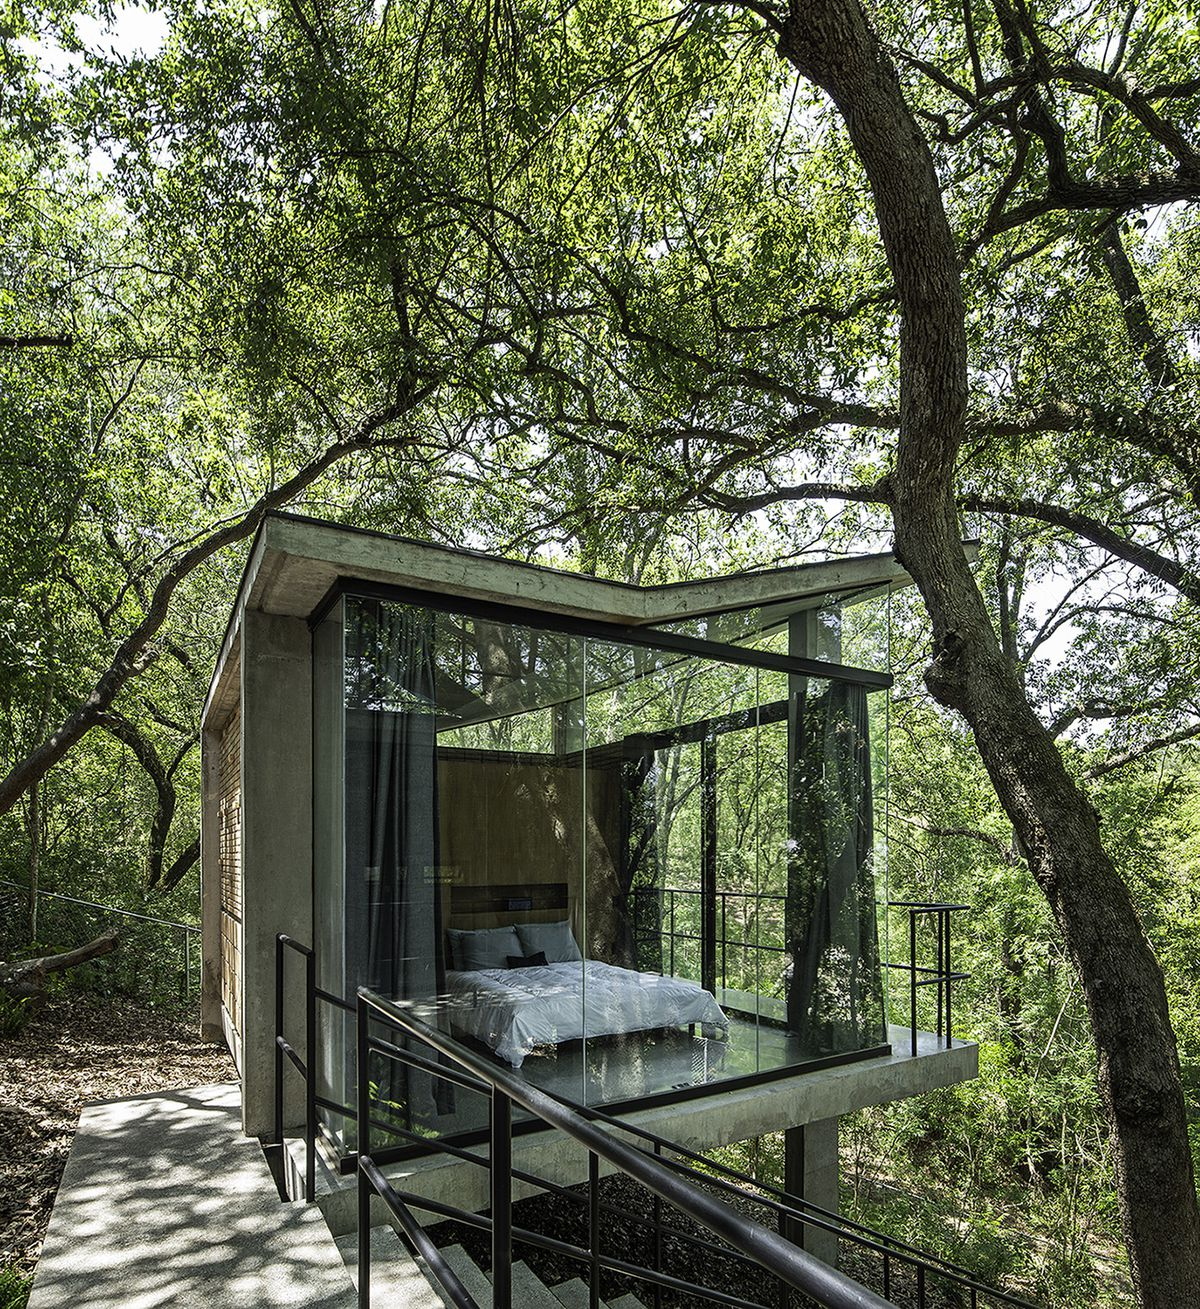 A bedroom encased in glass windows that looks like a treehouse. Trees surround it.